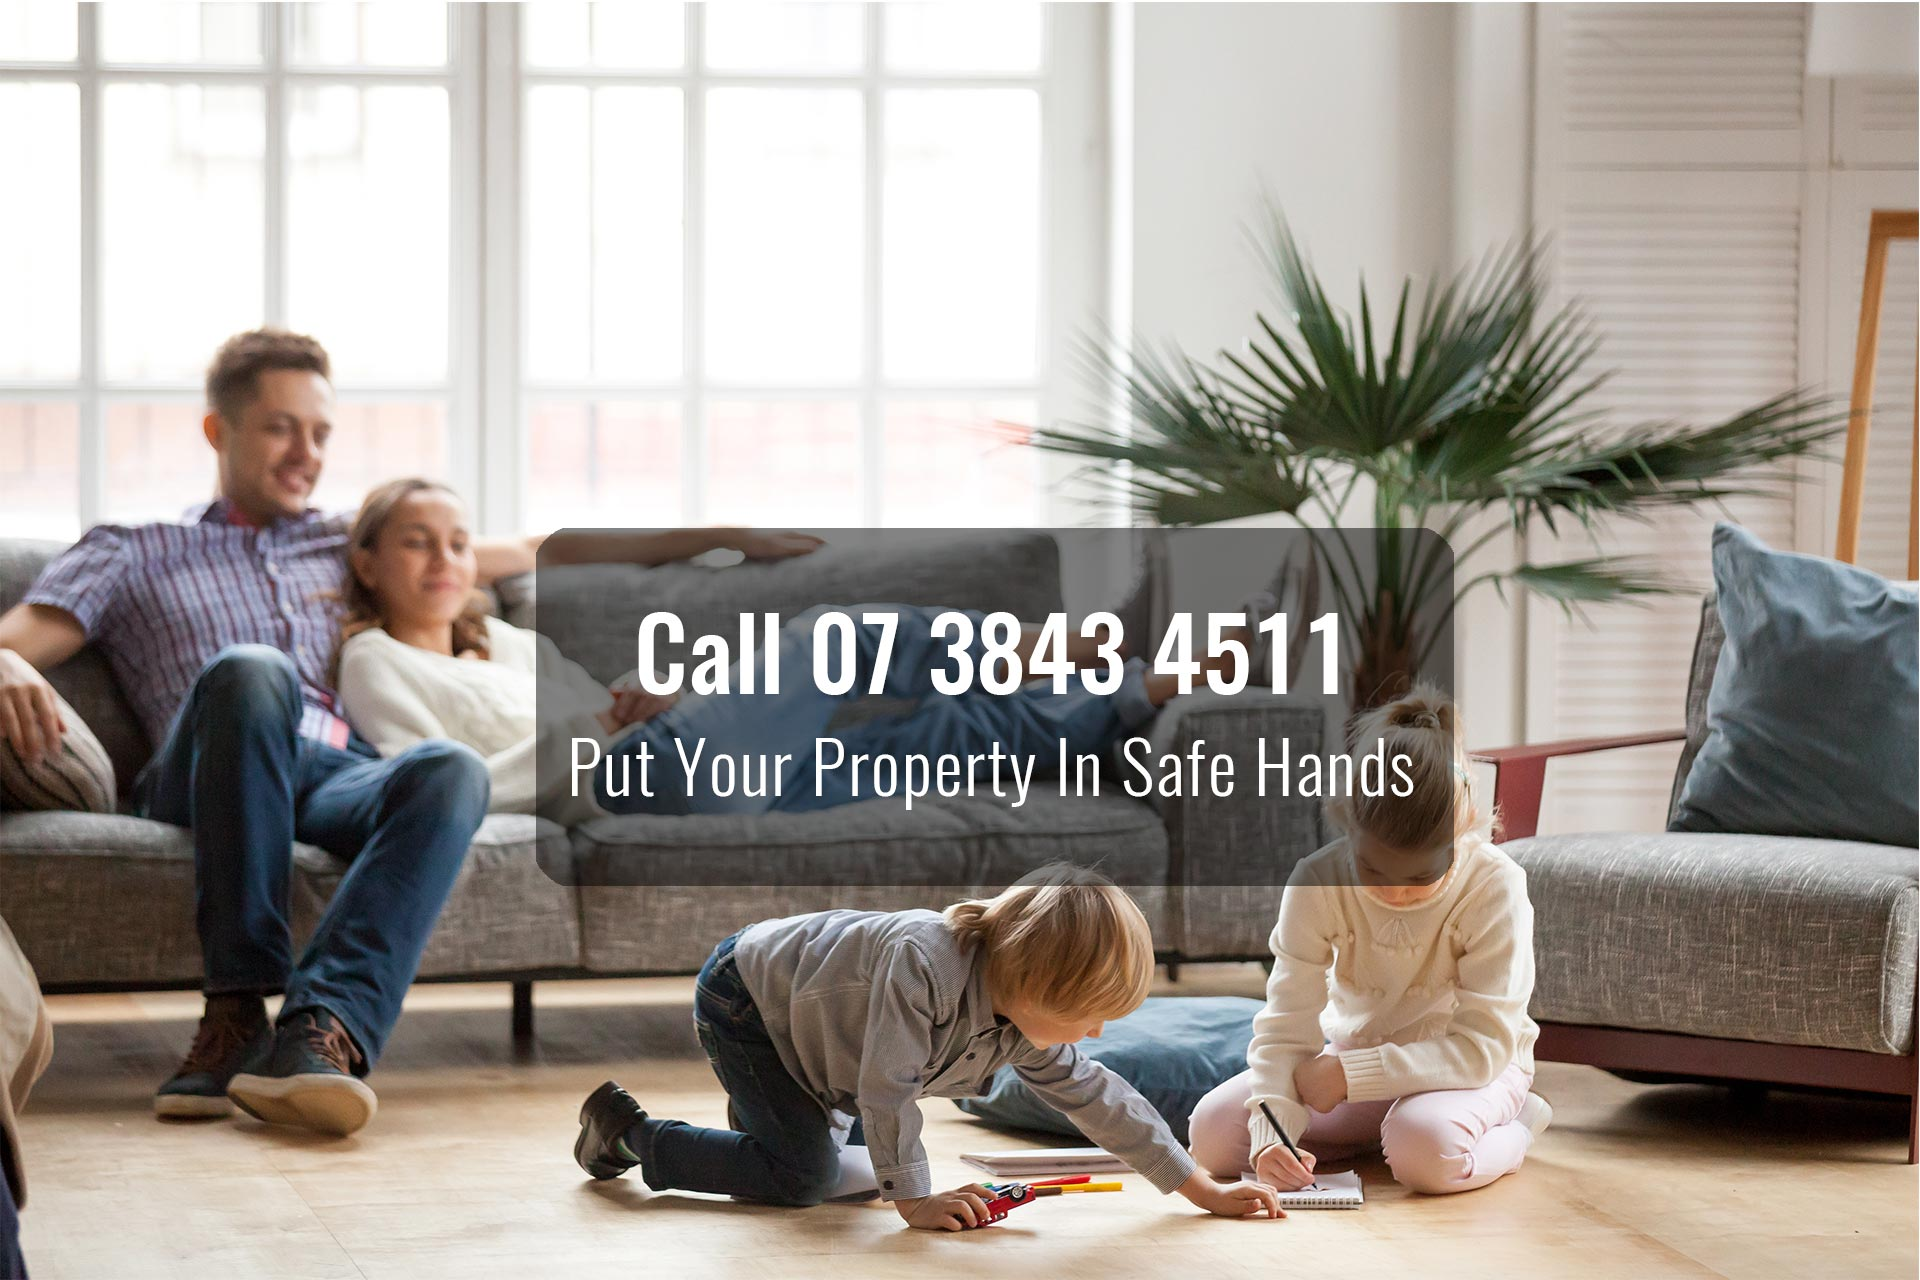 Put Your Property in Safe Hands